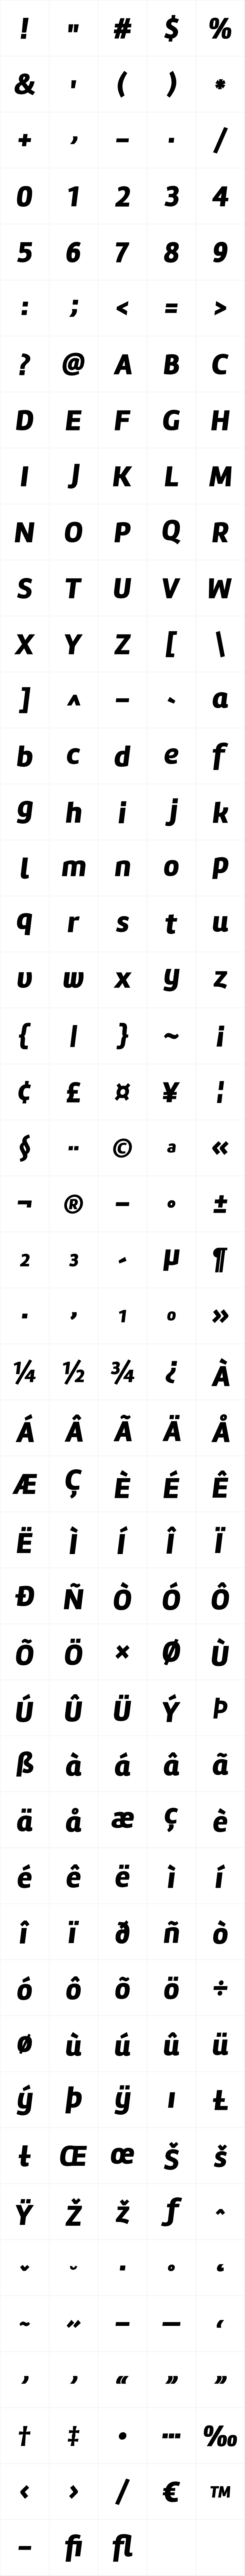 AmeliaBlack BlackItalic